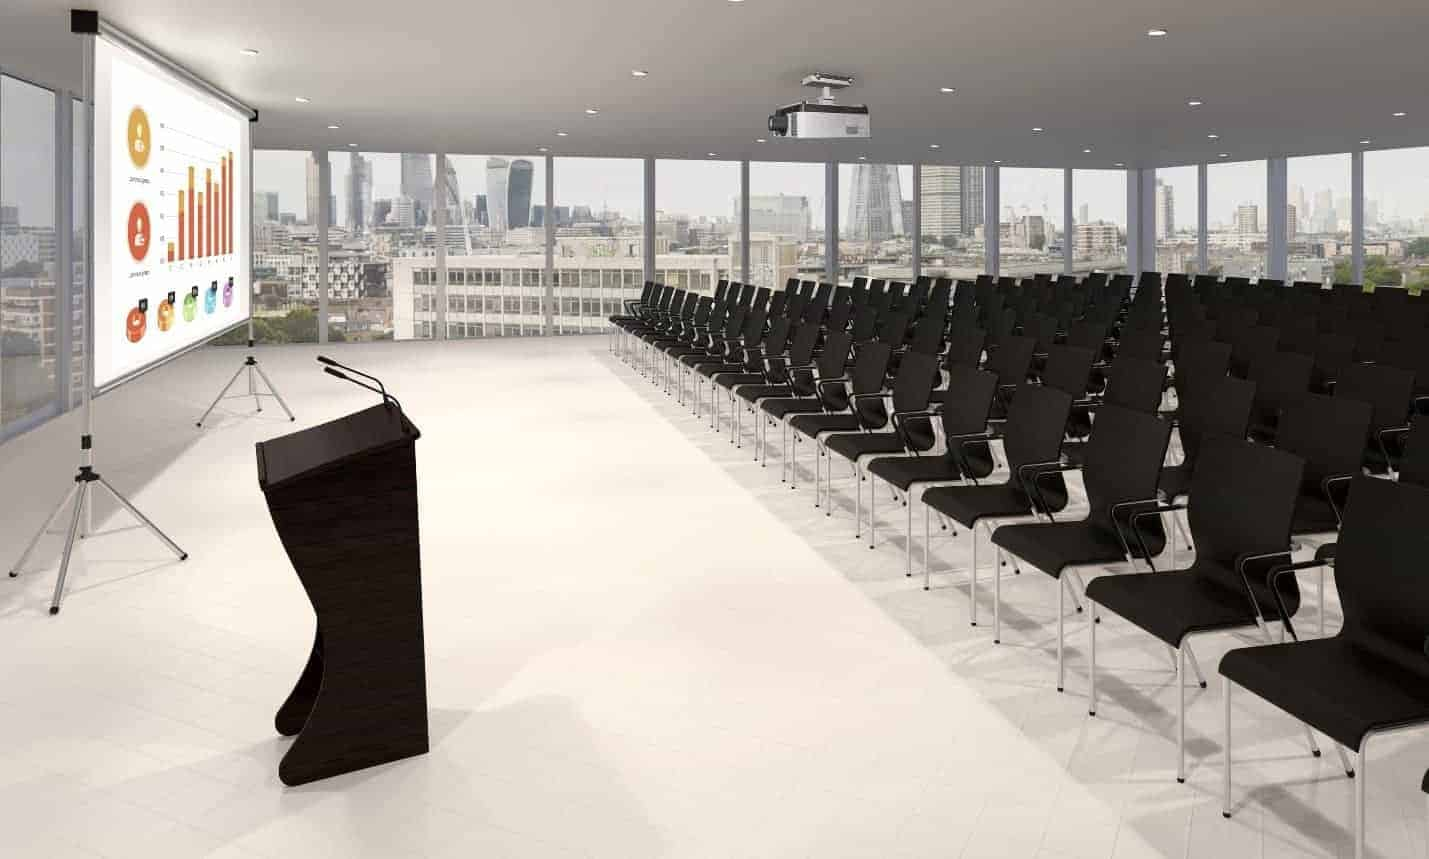 sony1 Sony Launches 5 New Laser Projectors